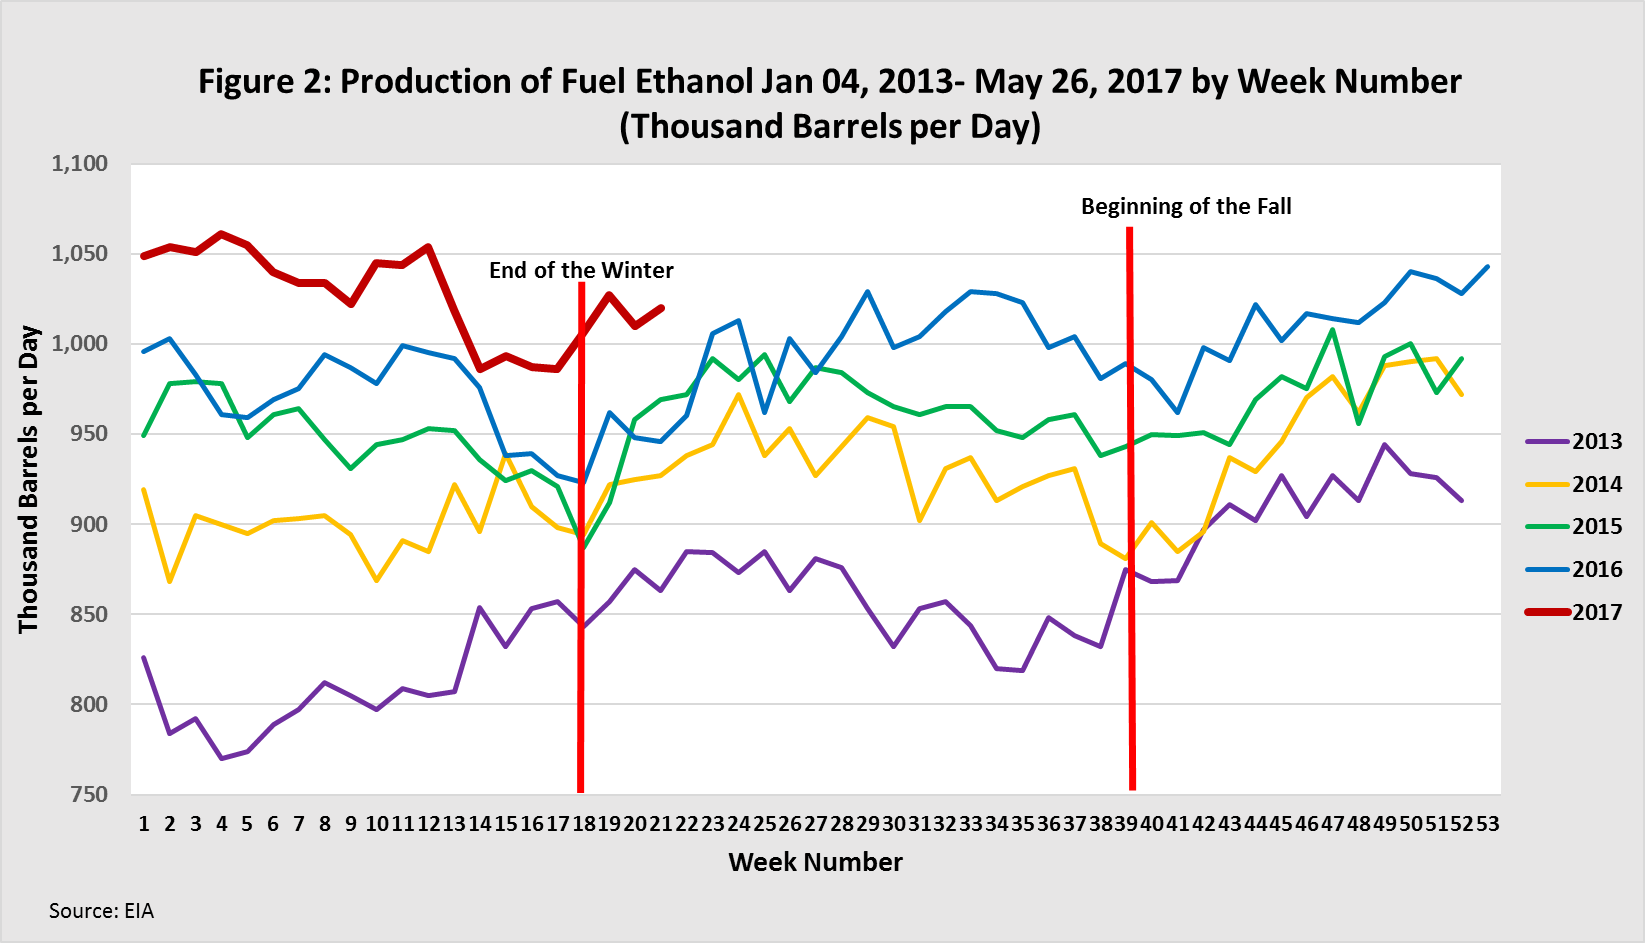 Production of Fuel Ethanol